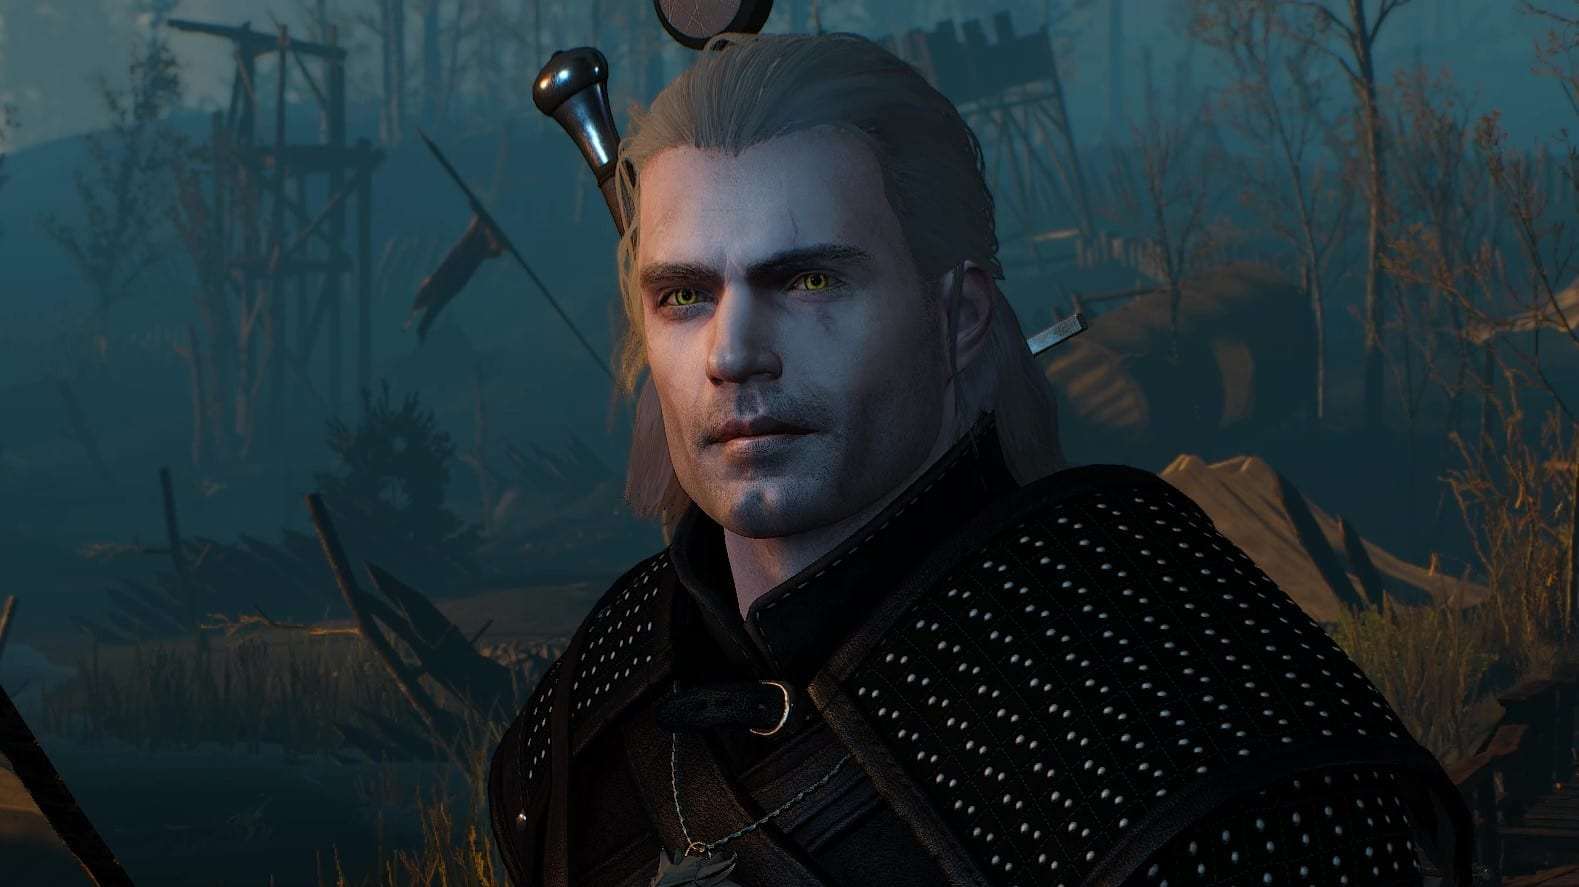 henry cavill, witcher 3 mod, how to play